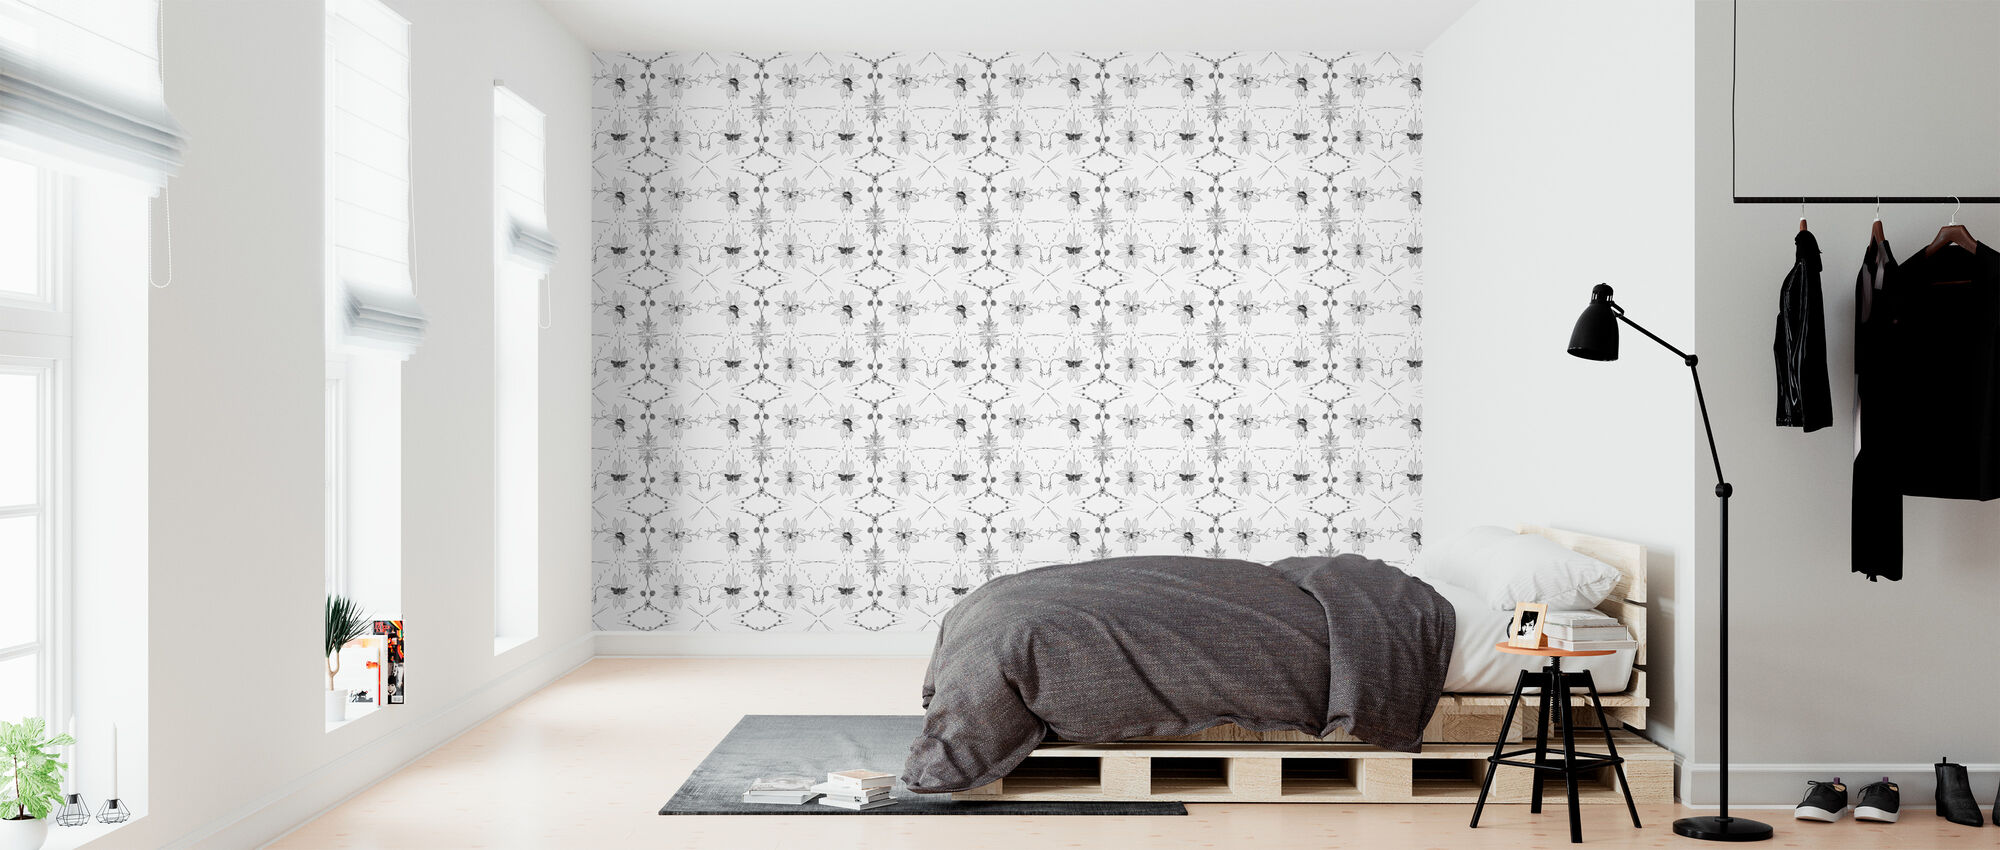 Bug - Wallpaper - Bedroom